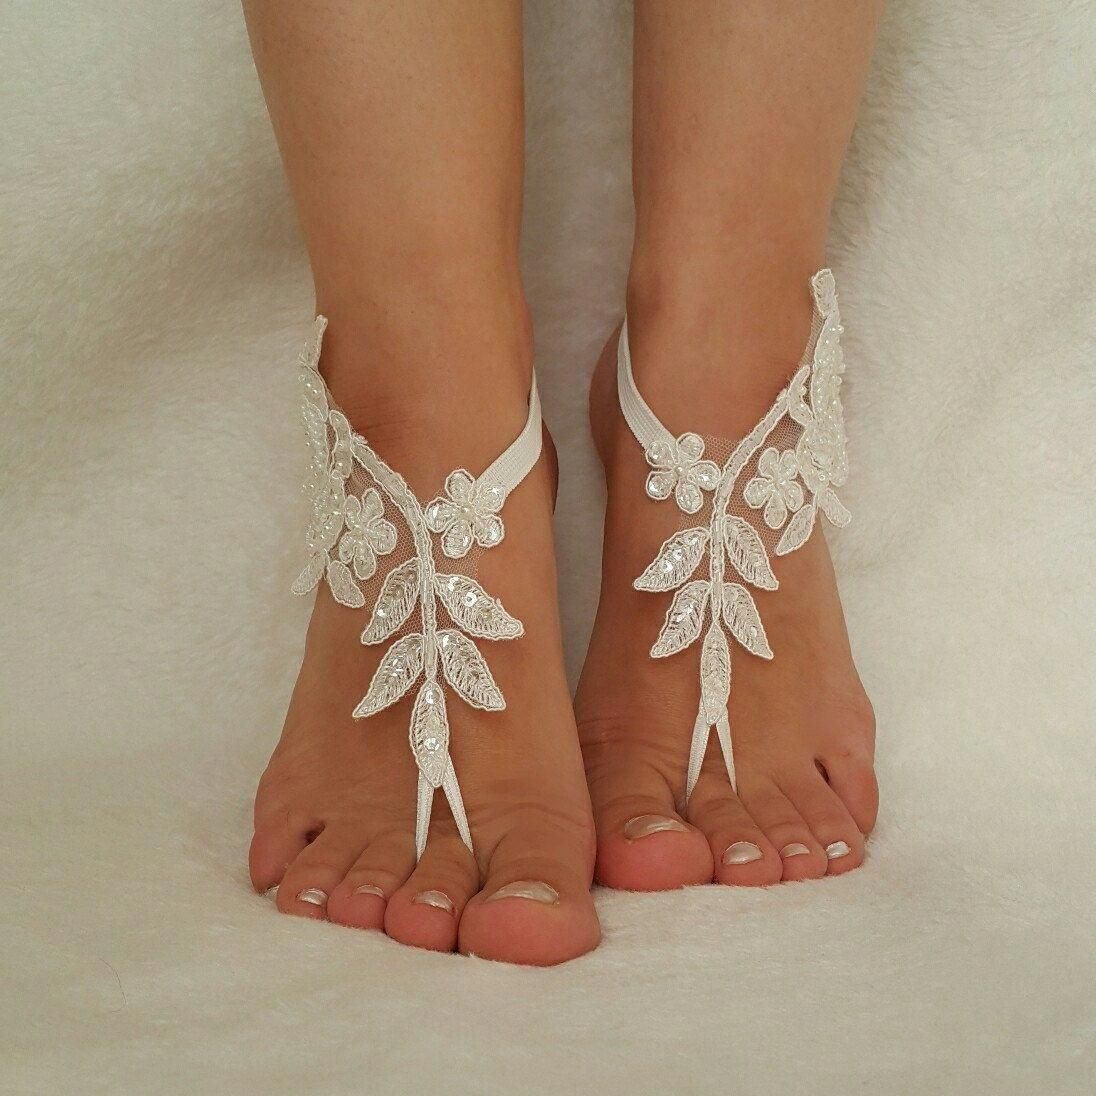 6 colors beach wedding sandals bridal anklet bridesmaid gift lace bangle  feet accessories foot jewelry flexible wrist steampunk bellydancing  weddingday ...